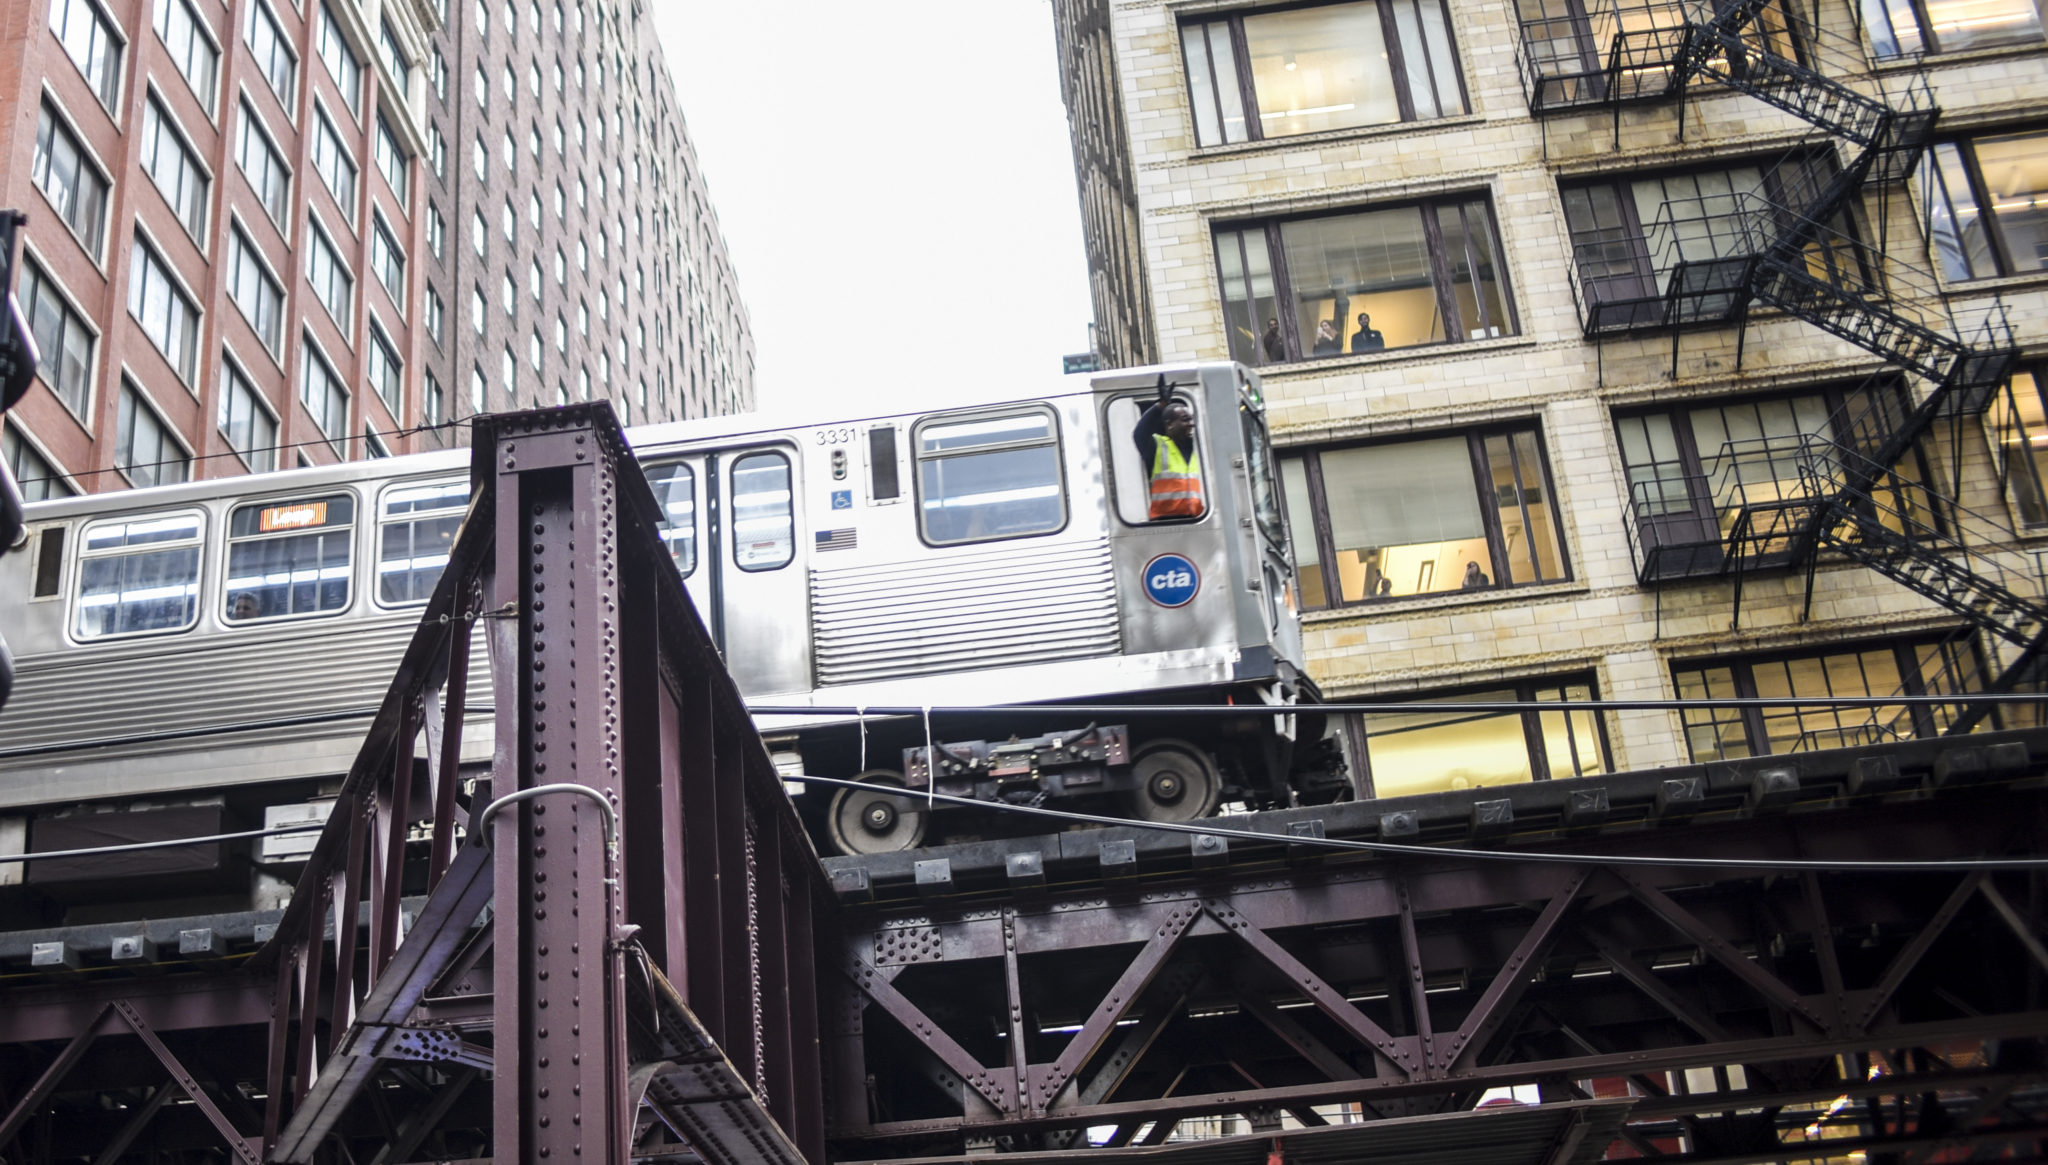 Even the El conductor is happy to see justice for Laquan McDonald.